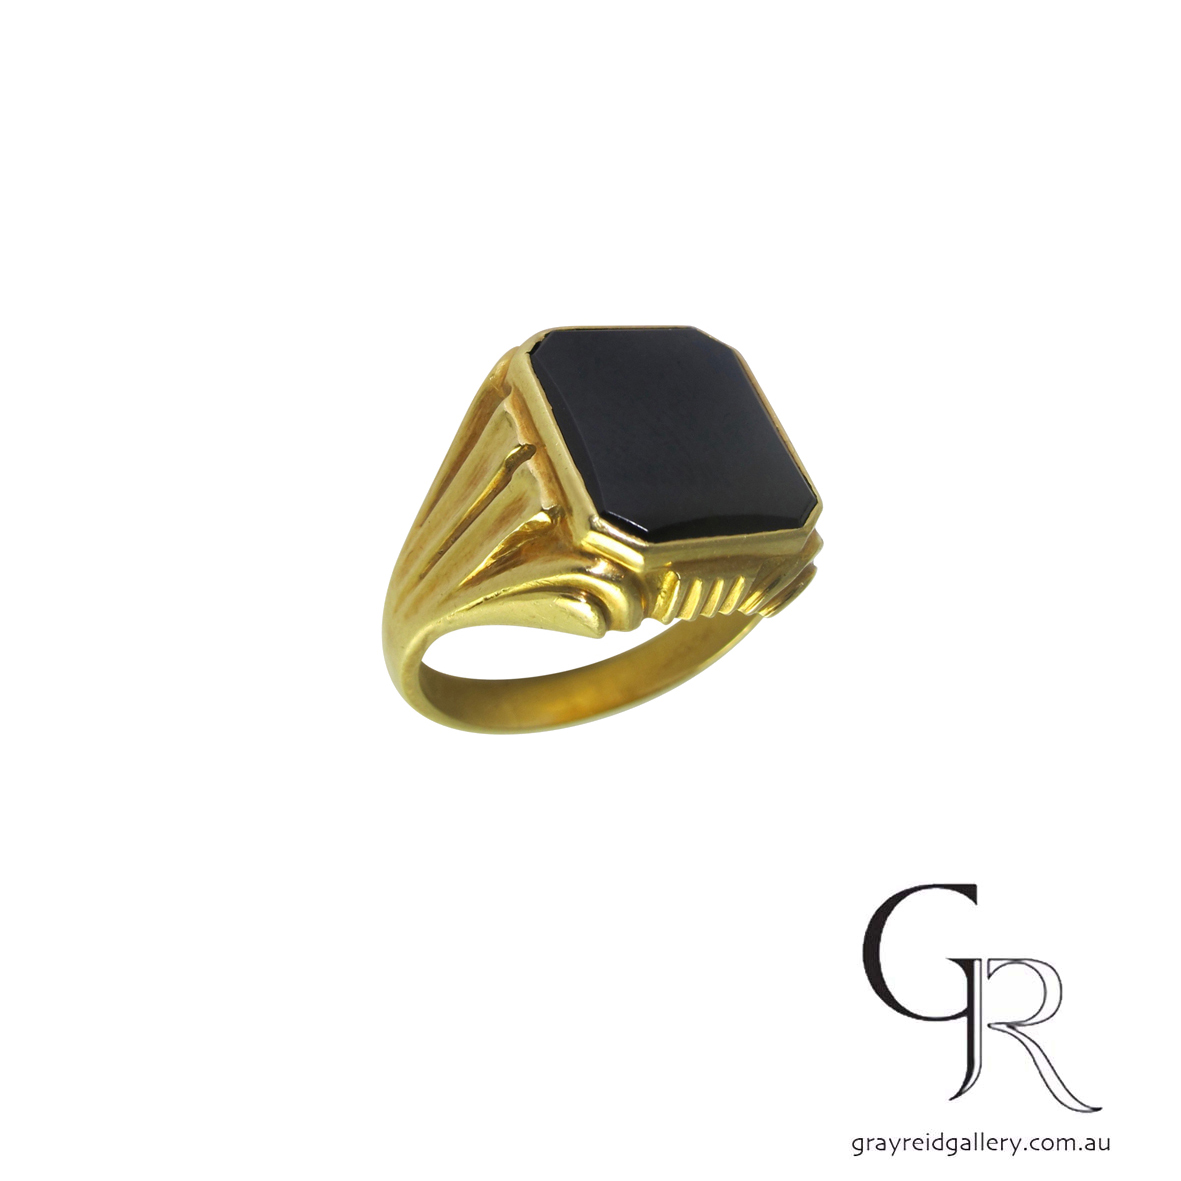 deco signet rings melbourne custom made gray reid gallery.jpg